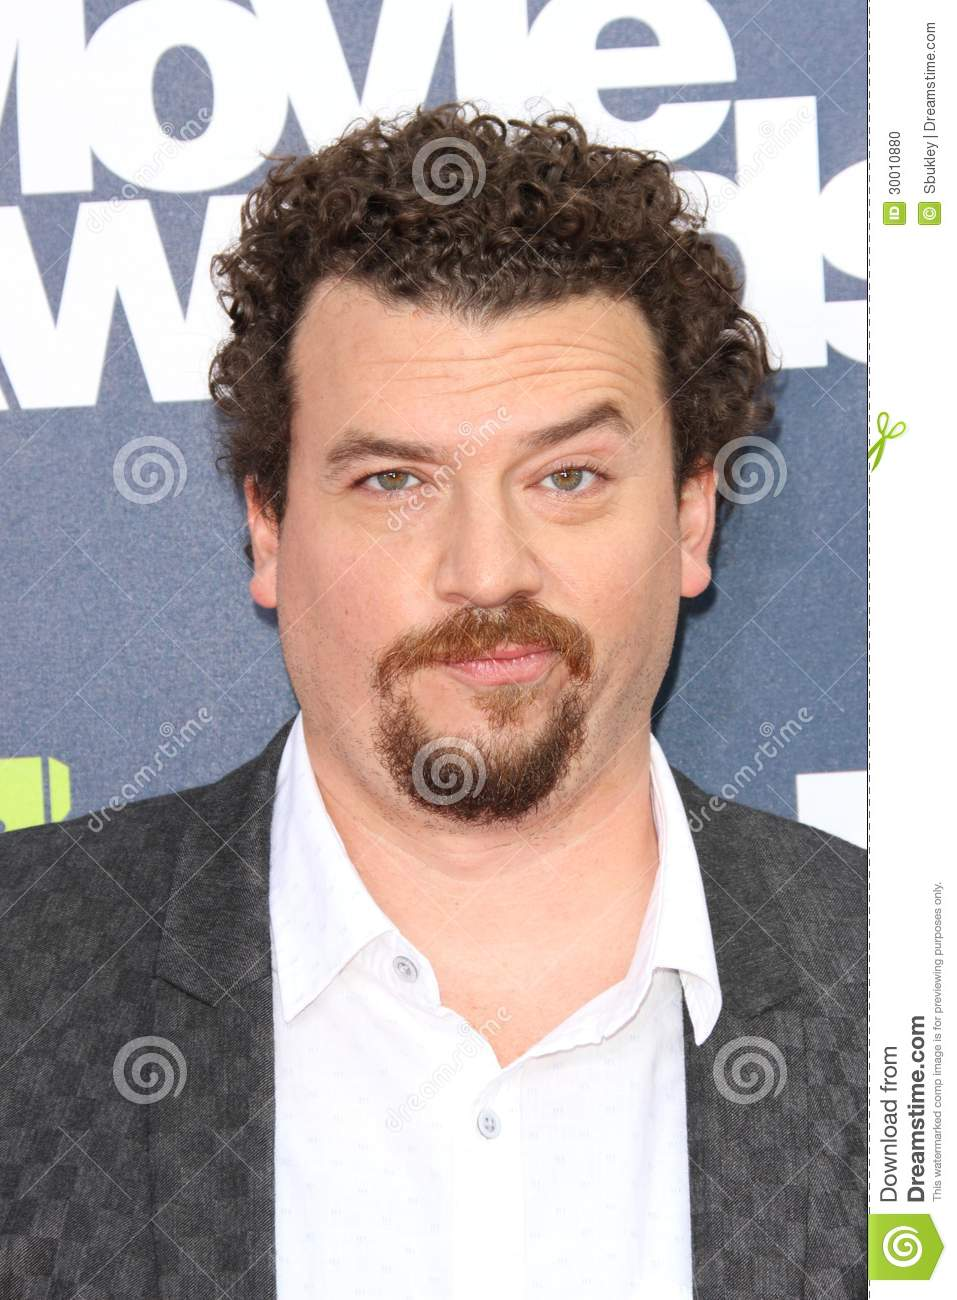 danny mcbride all moviesdanny mcbride height, danny mcbride artist, danny mcbride cannibal, danny mcbride eastbound and down, danny mcbride parents, danny mcbride young, danny mcbride gif, danny mcbride movies, danny mcbride height weight, danny mcbride twitter, danny mcbride nick swardson, danny mcbride pineapple express, danny mcbride instagram, danny mcbride alien covenant, danny mcbride films, danny mcbride filmleri, danny mcbride all movies, danny mcbride best movies, danny mcbride official twitter